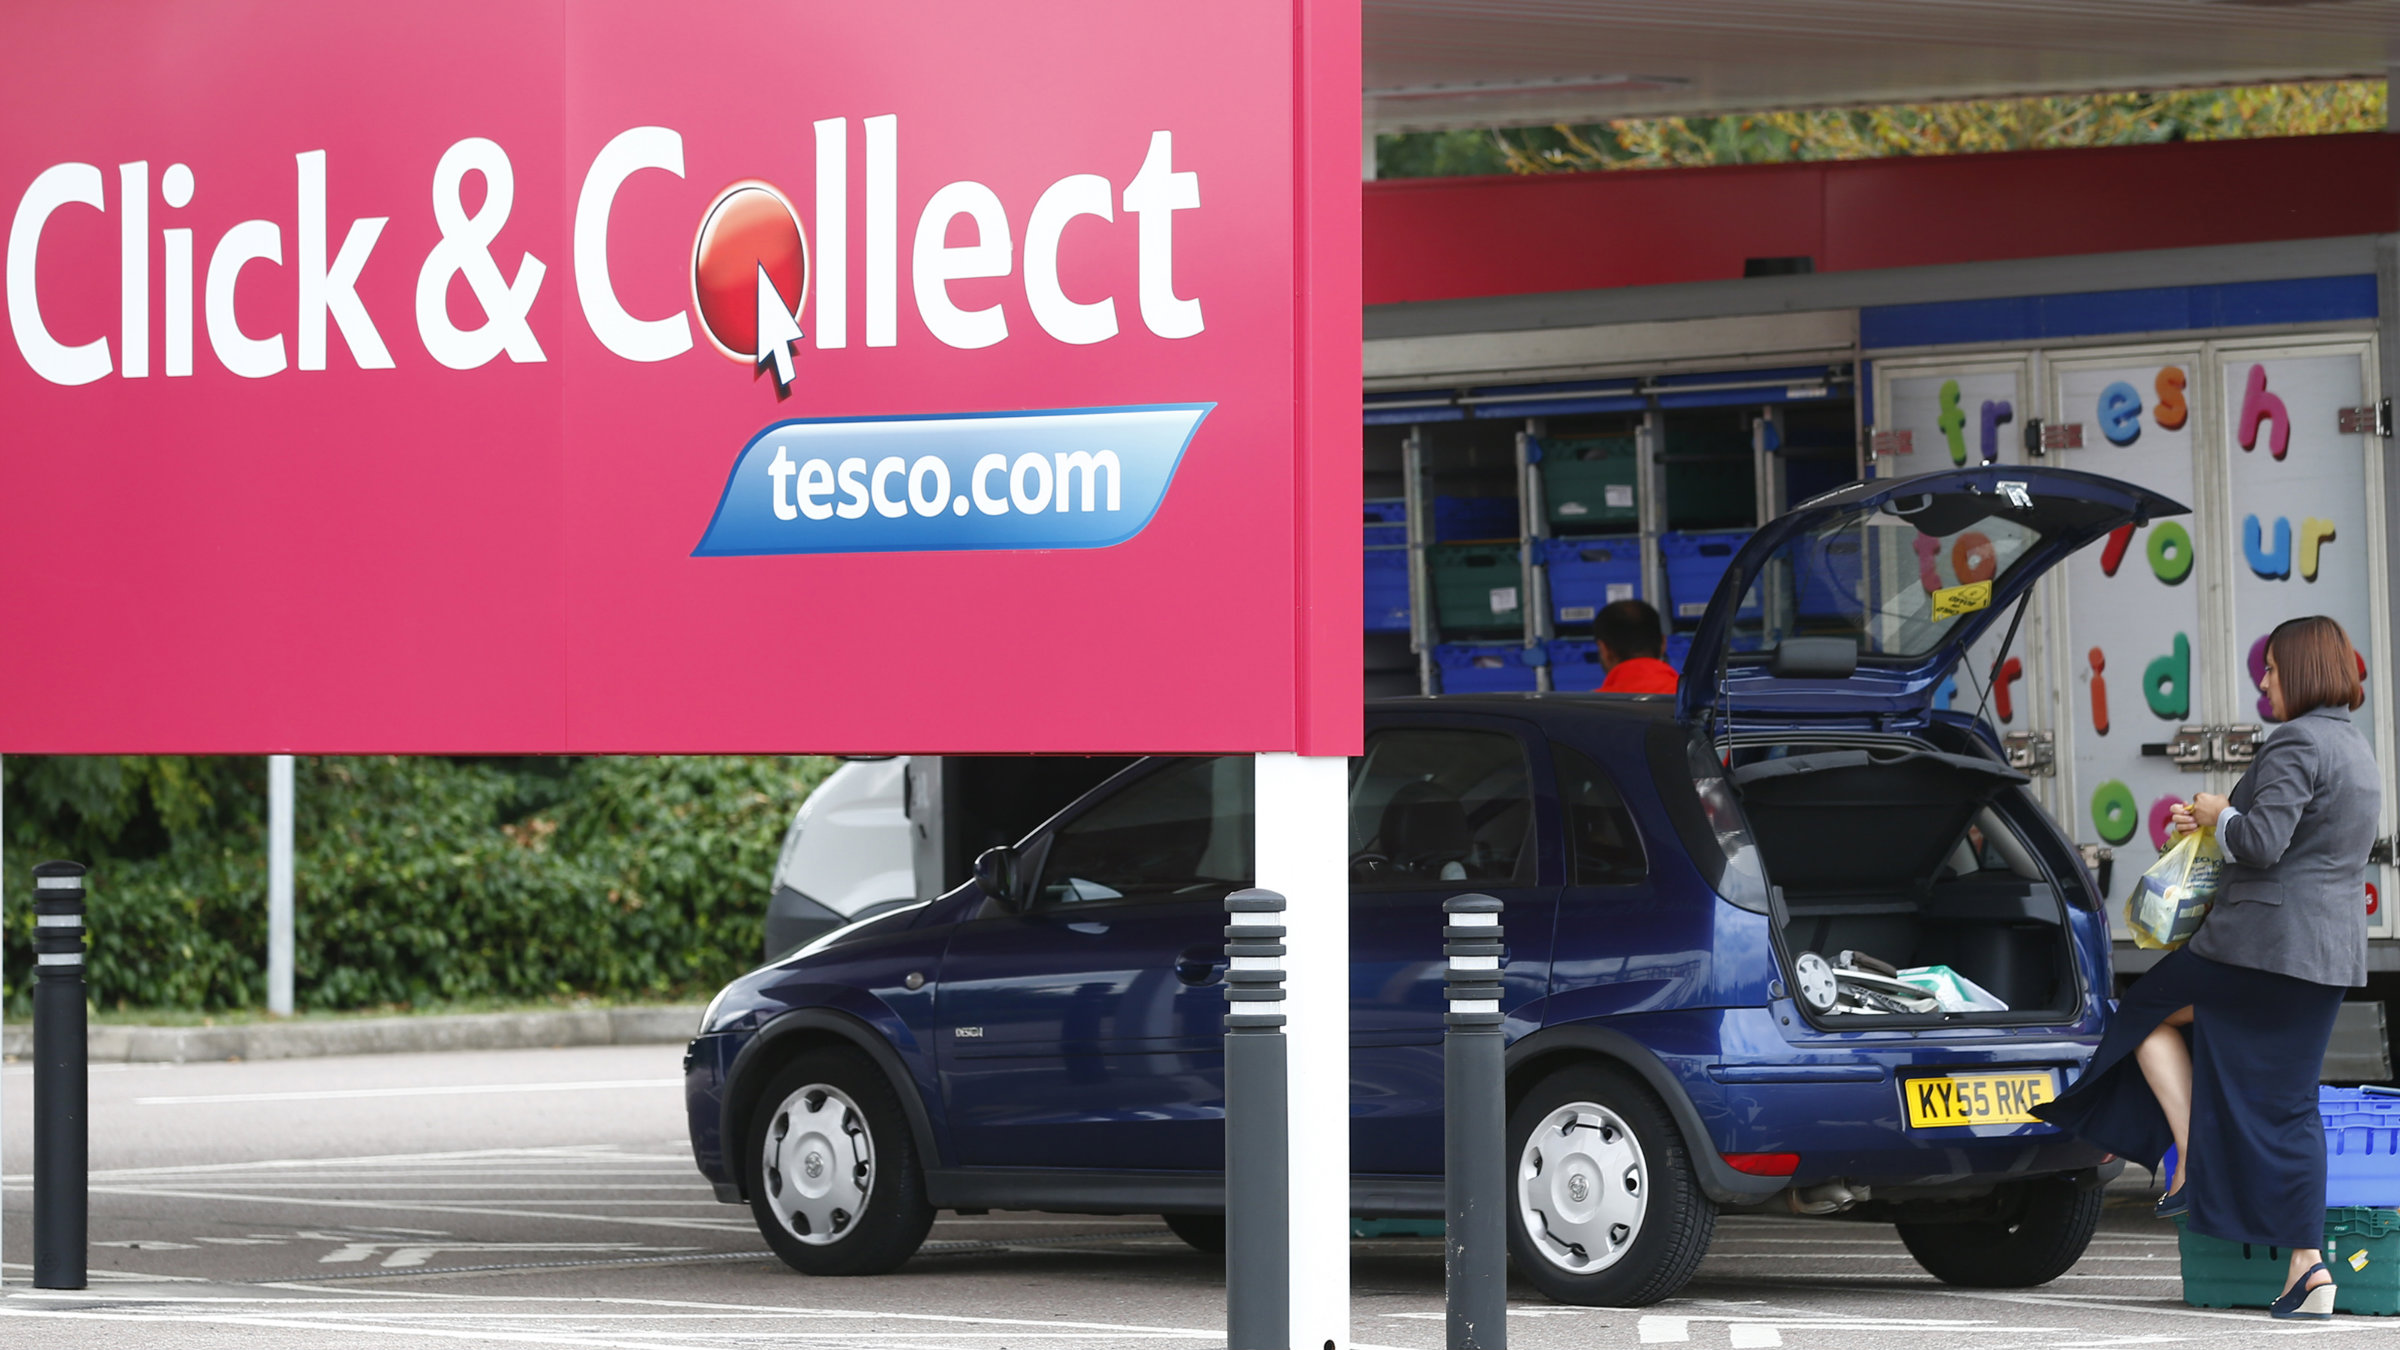 Tesco groceries ordered on Tesco tablets are best paid for with Tesco bank accounts and retrieved with Tesco gas.